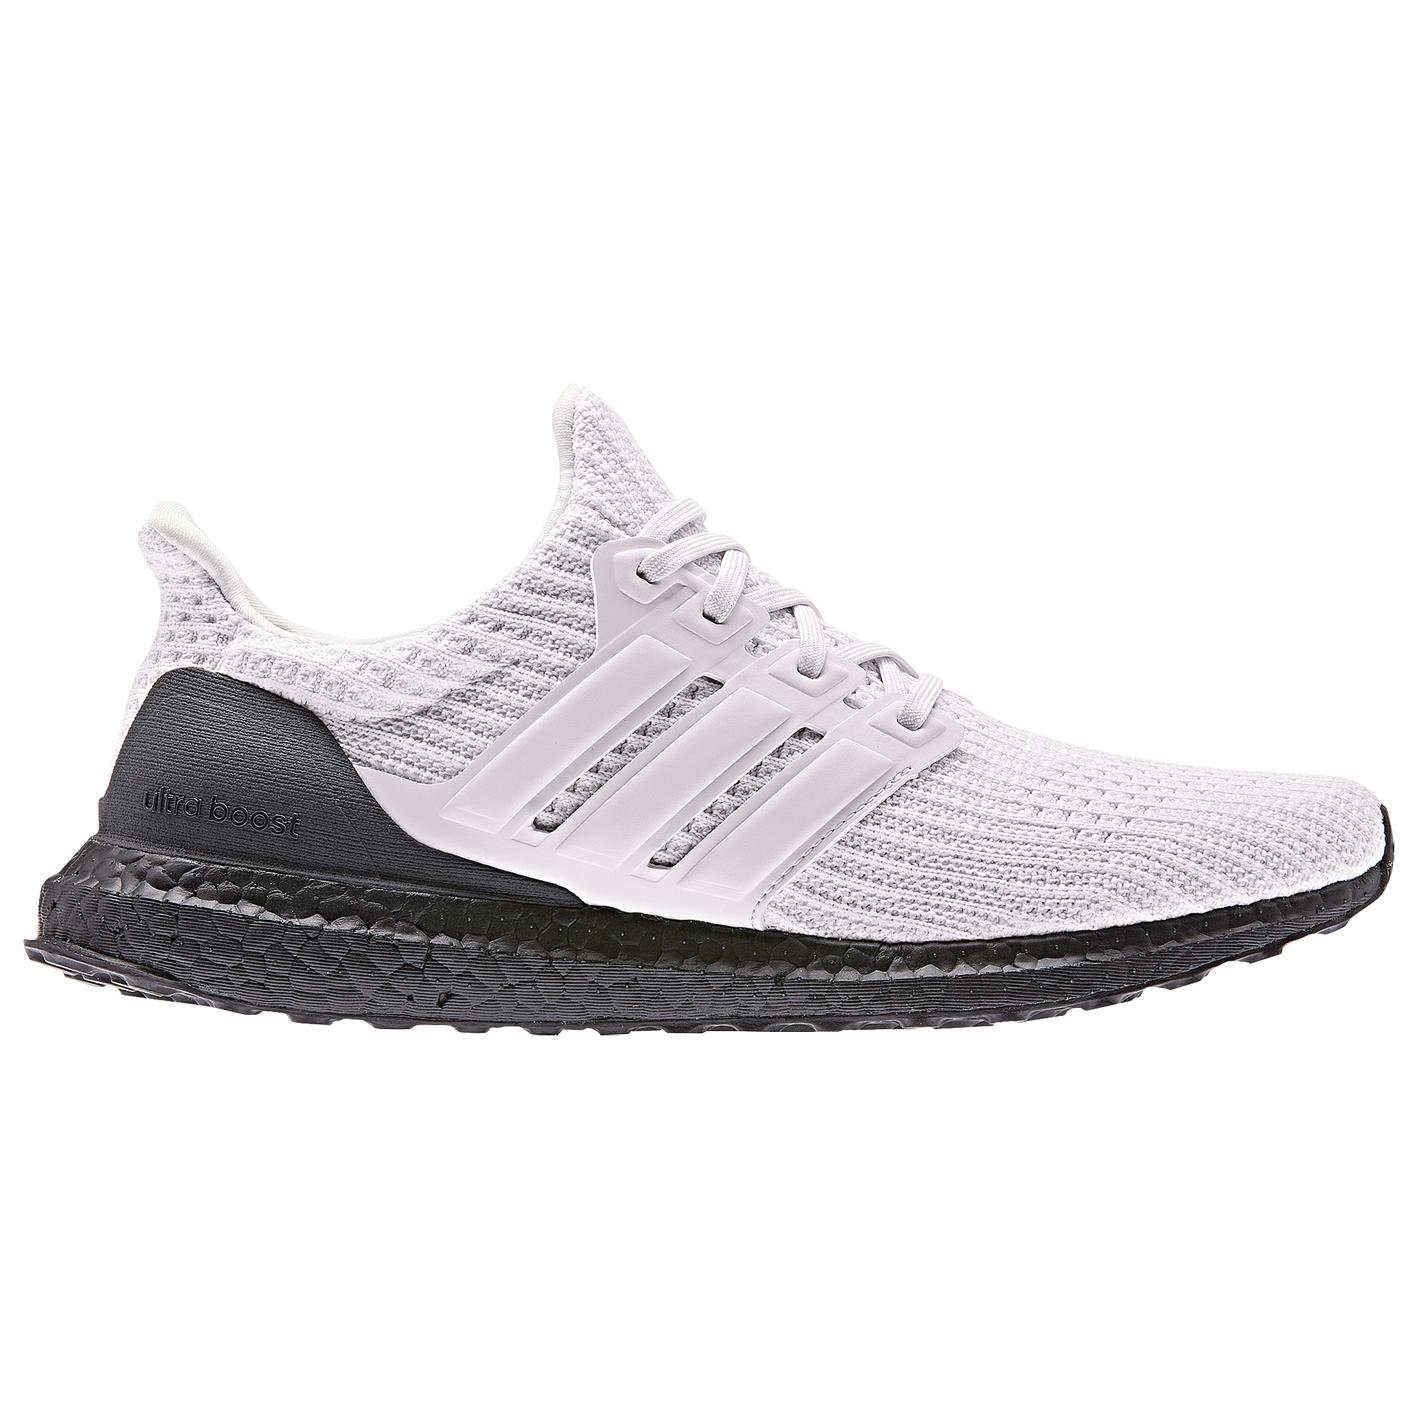 b9a8ee6cd1886 adidas Ultraboost - Men s - Running - Shoes - White Orchid Tint Black